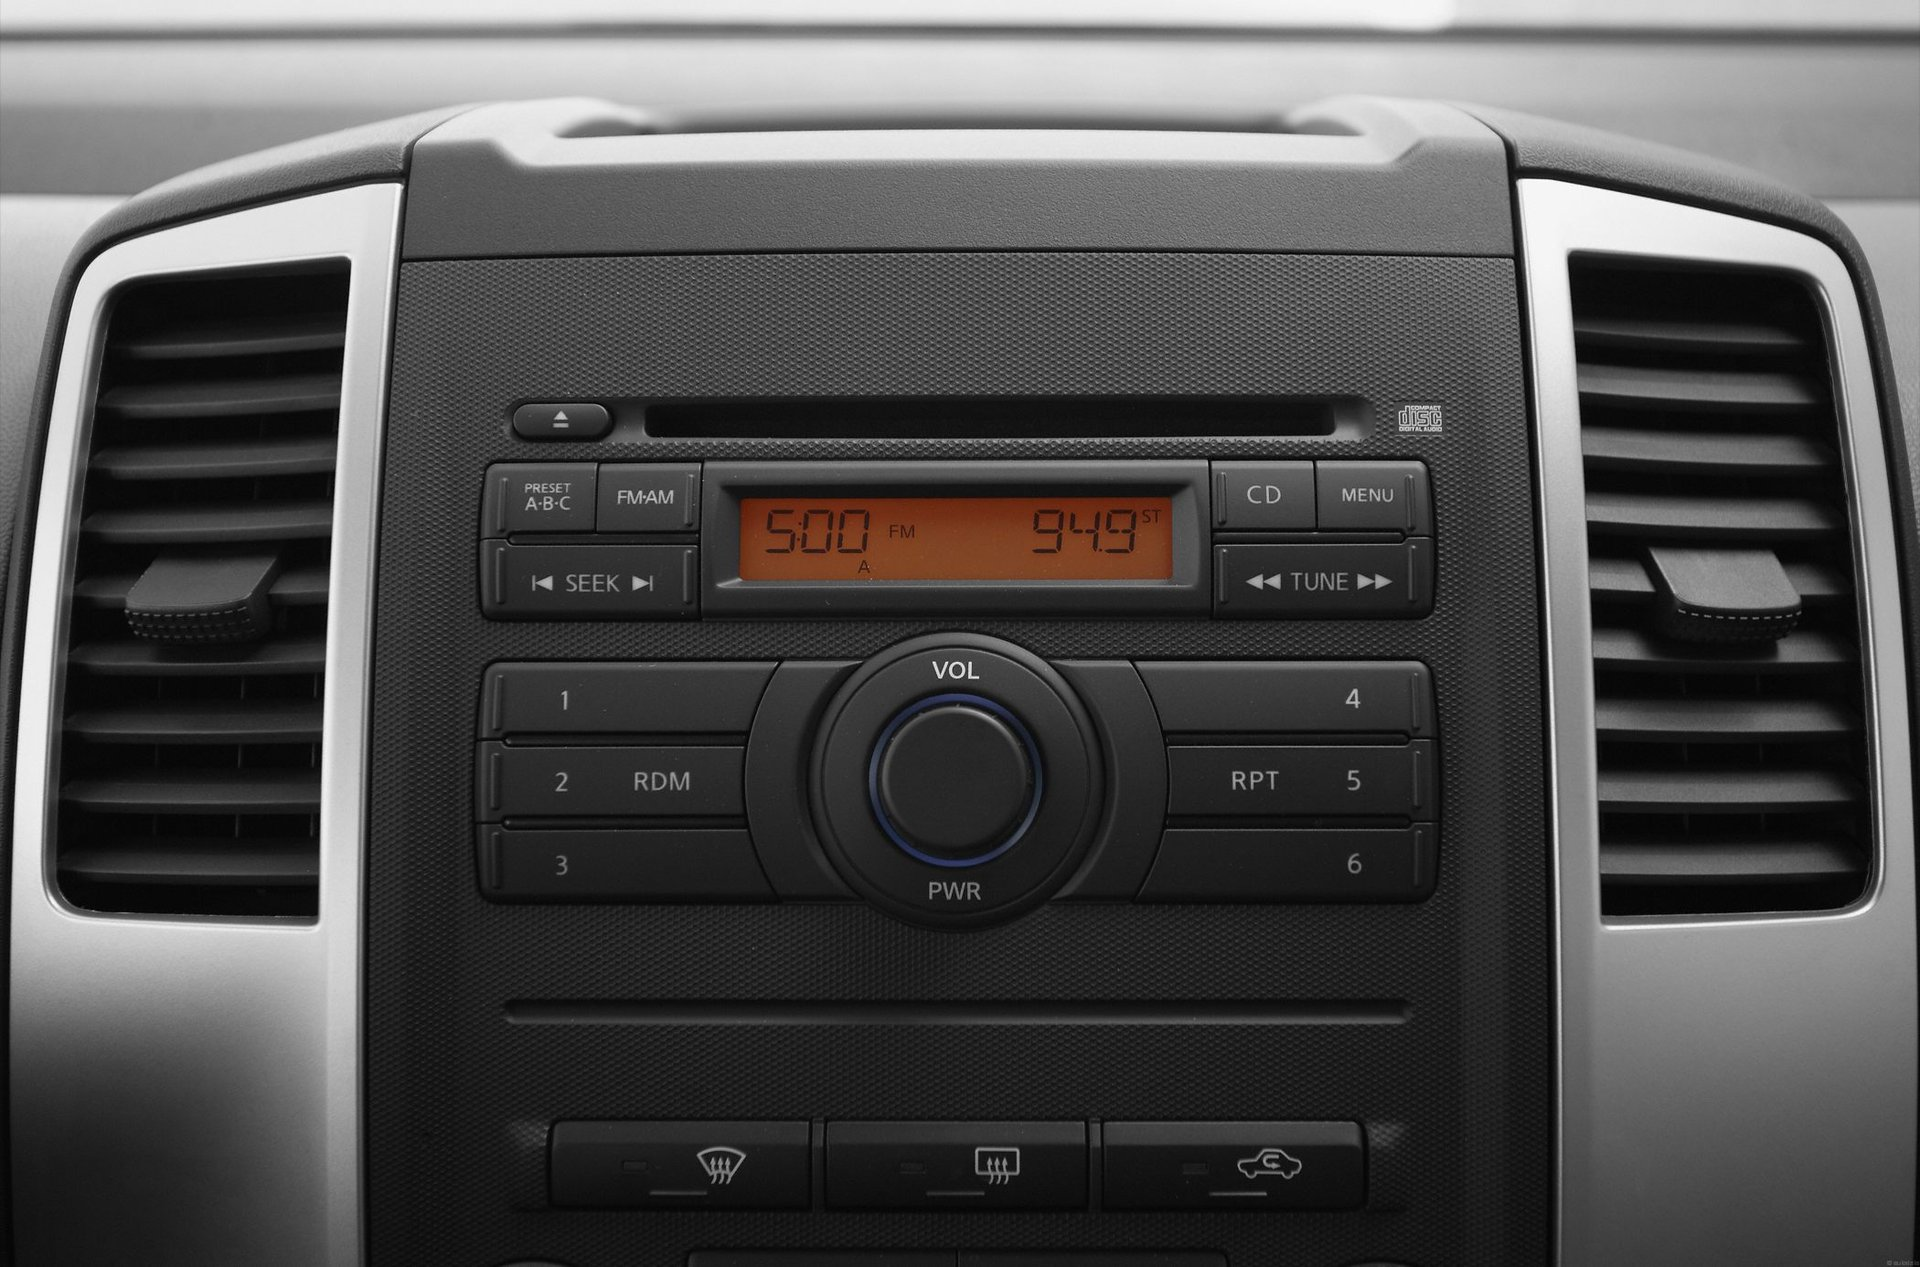 Factory Radio Information | Second Generation Nissan Xterra